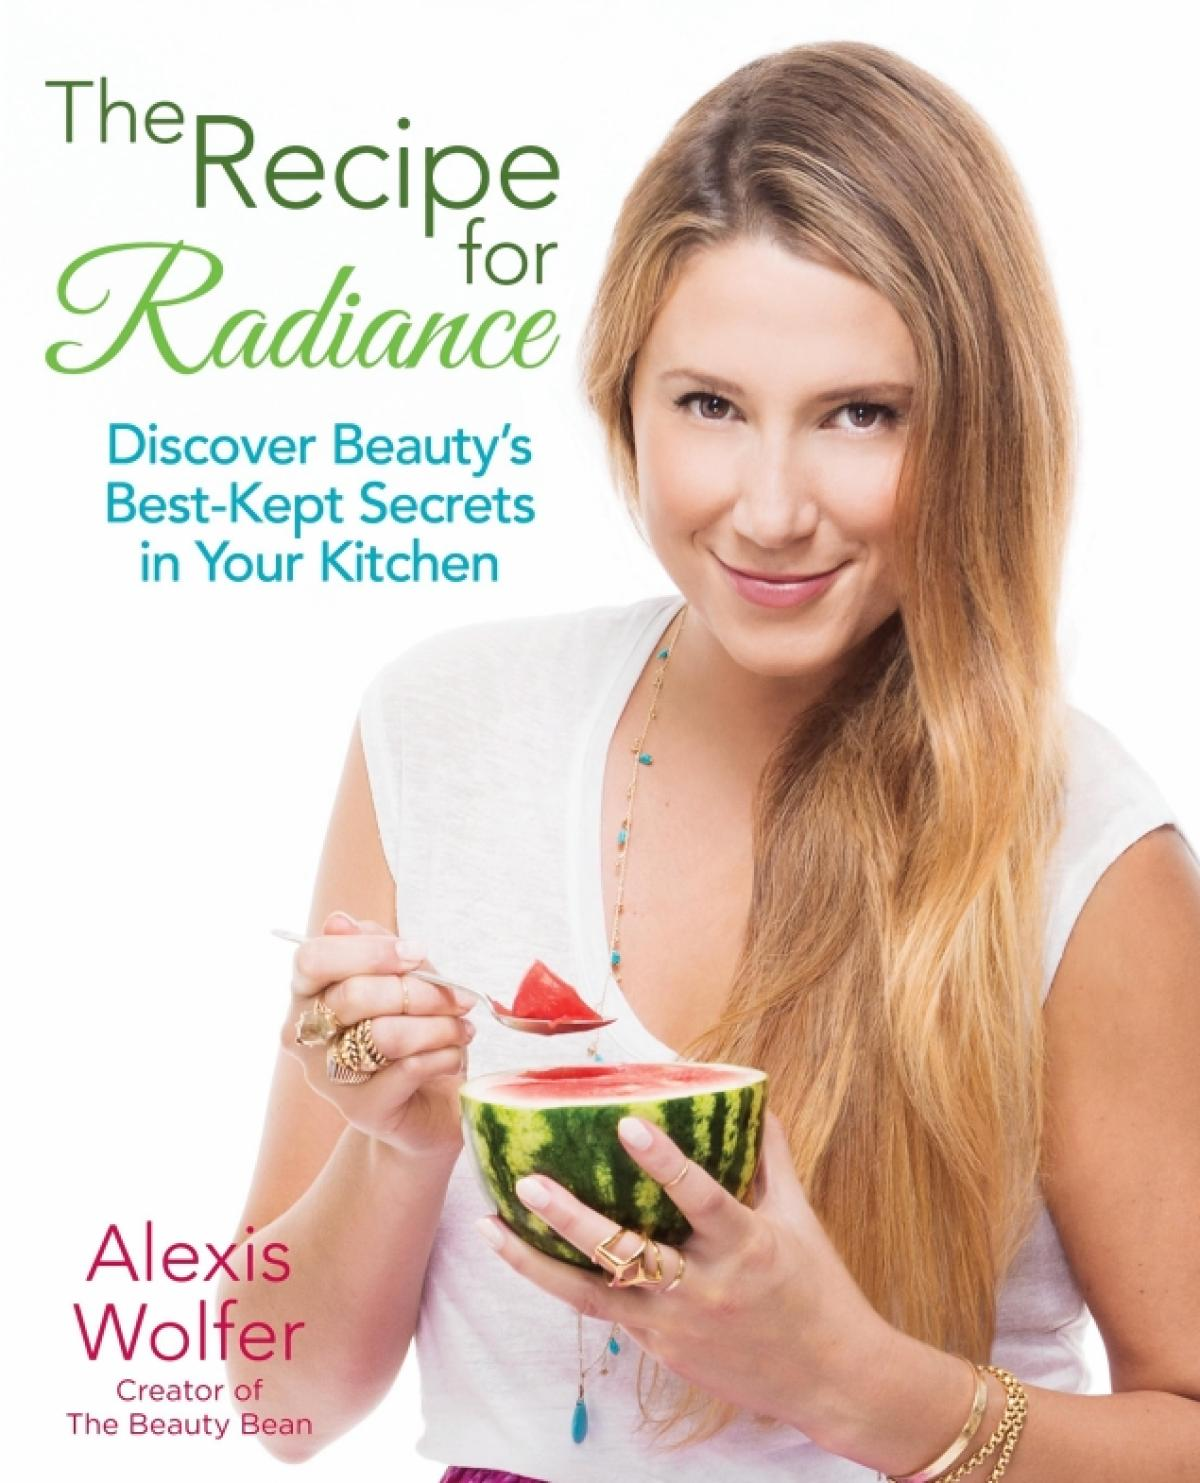 The Recipe for Radiance by Alexis Wolfer. Available at Amazon, $23.00